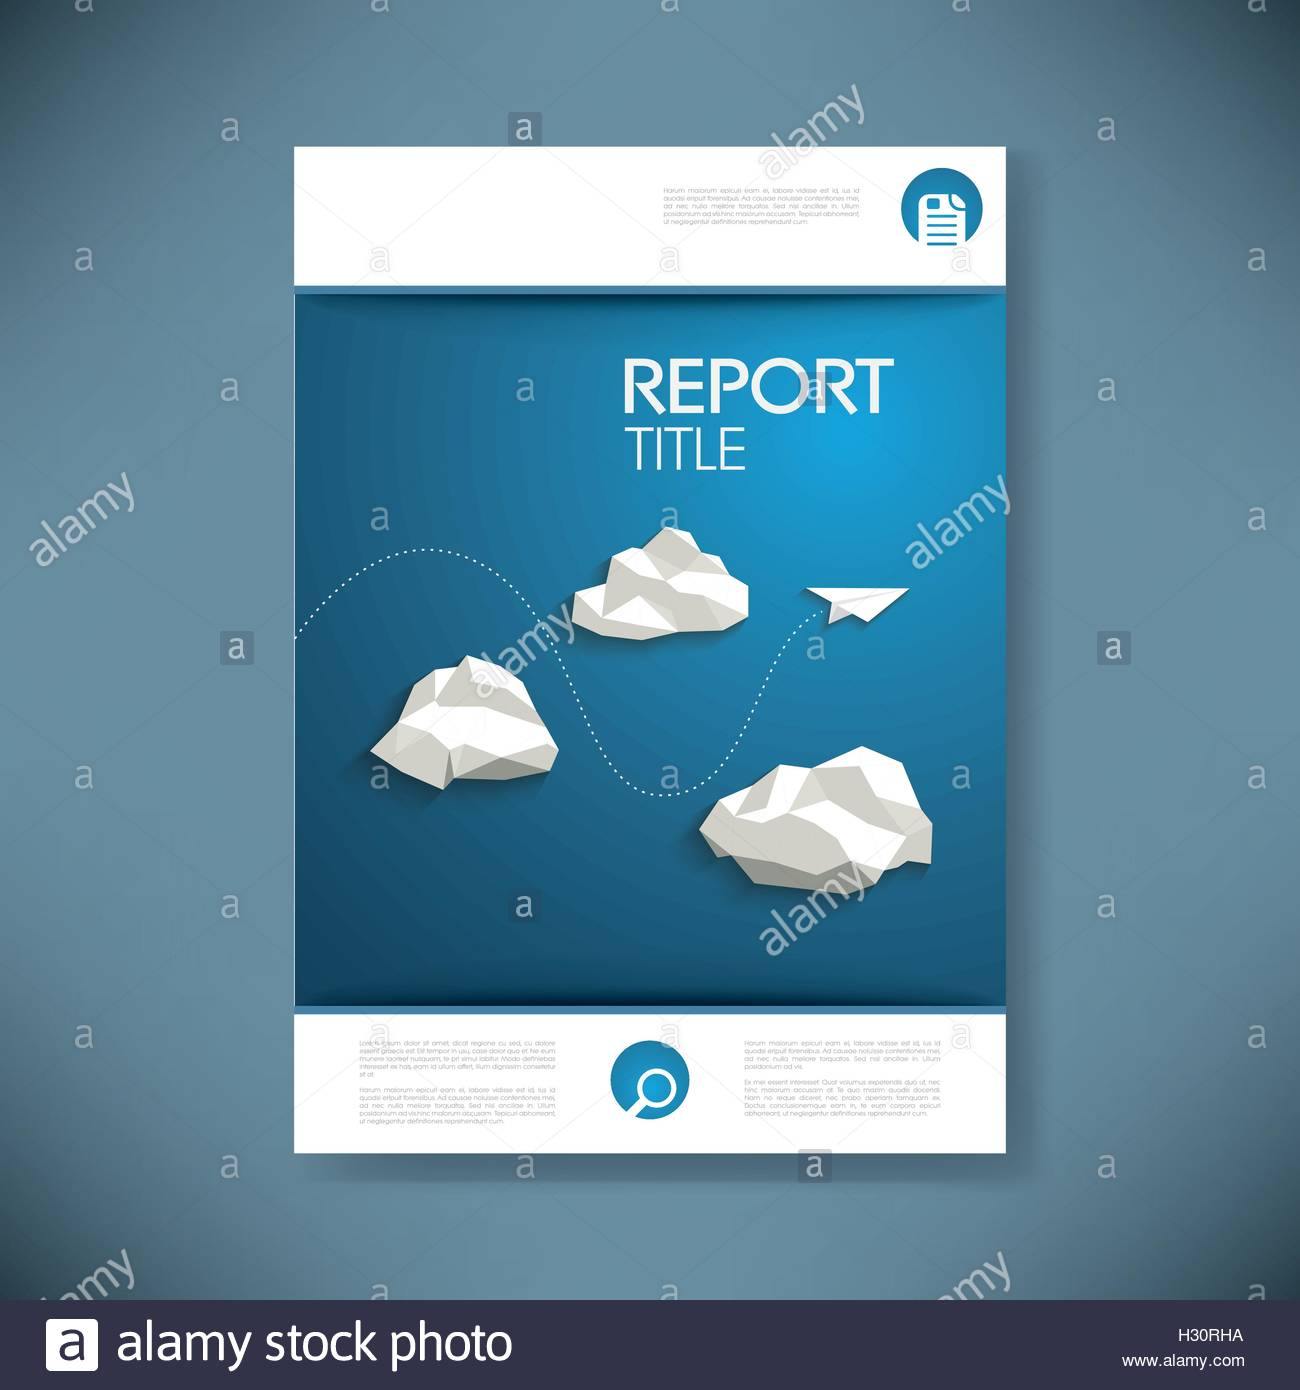 report cover template for business presentation or brochure. low, Low Poly Business Presentation Template, Presentation templates